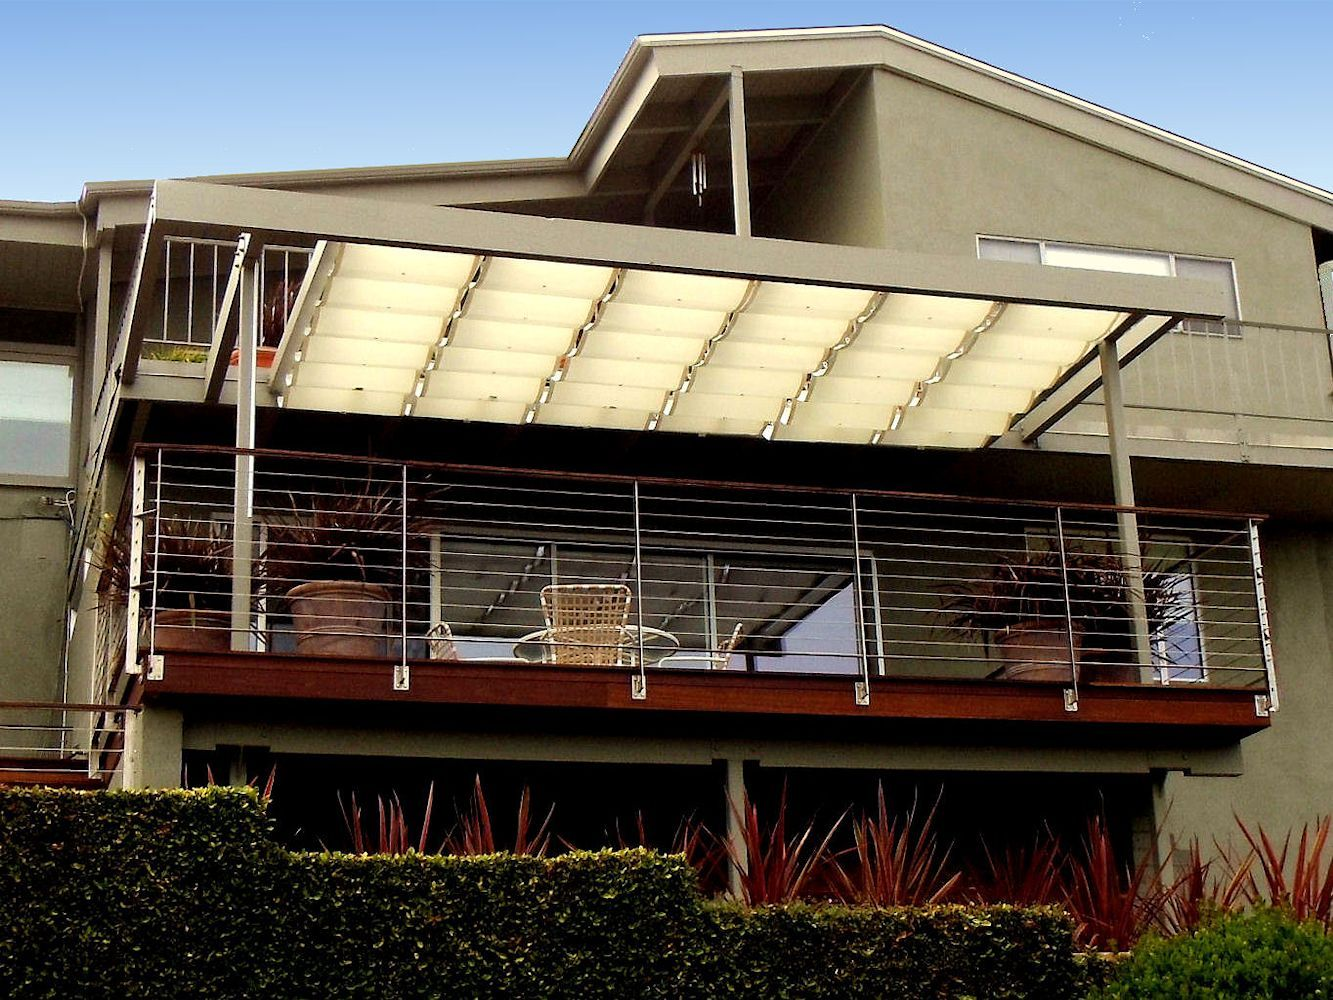 Slide Wire Cable Awnings By Superior Awning Let The Sun Shine Pergola Shade Diy Slide Wire Cable Awnings Outdoor Shade